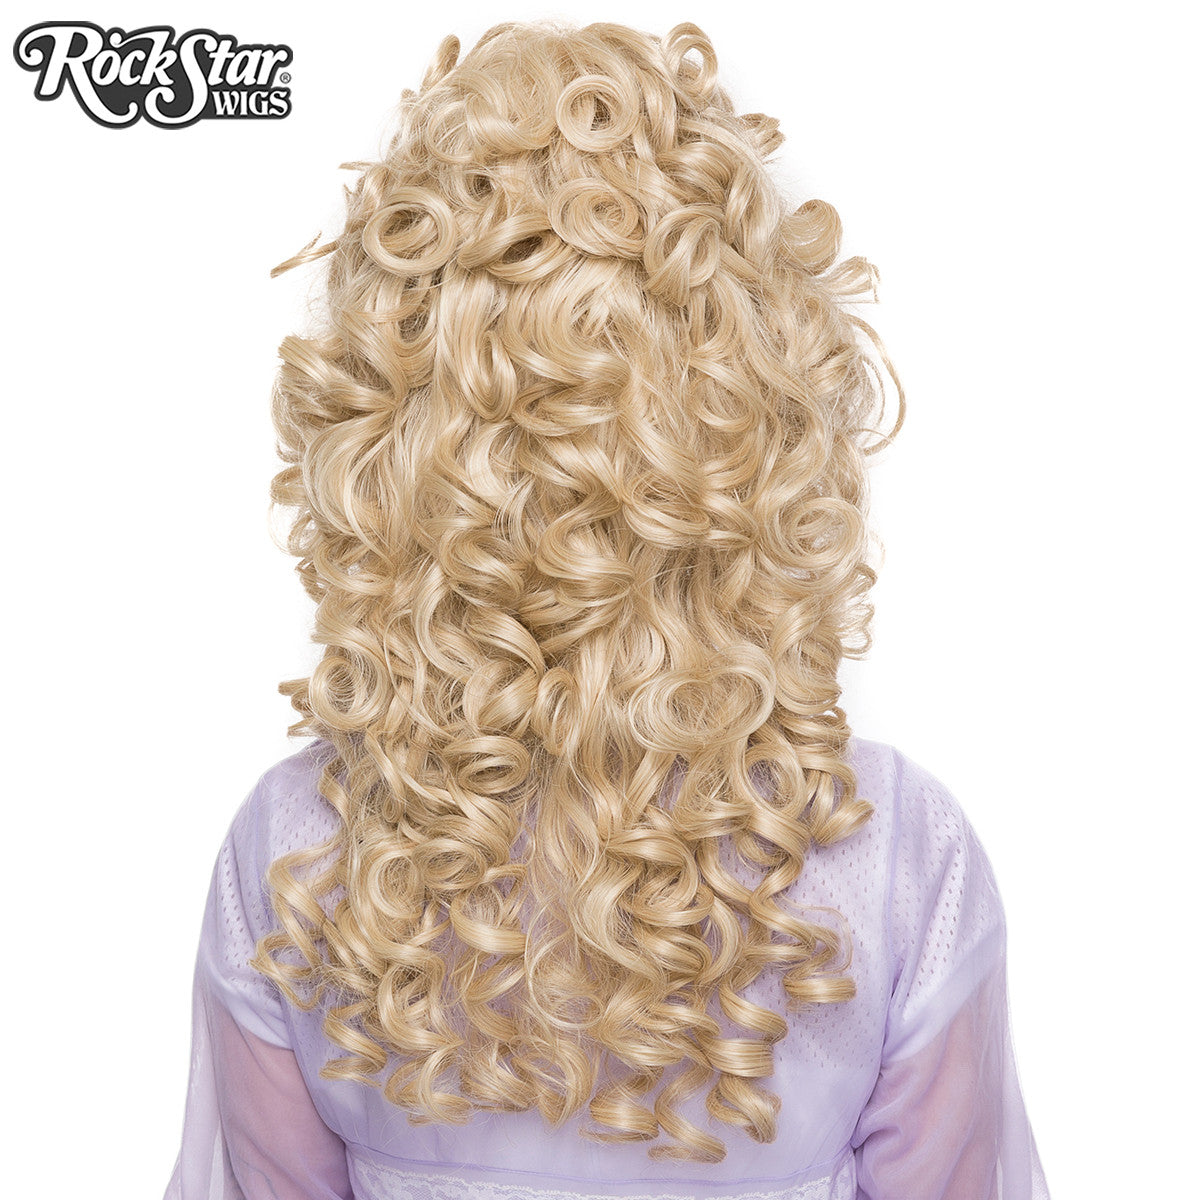 RockStar Wigs® <br> Marie Antoinette Collection - Le Blonde -00195